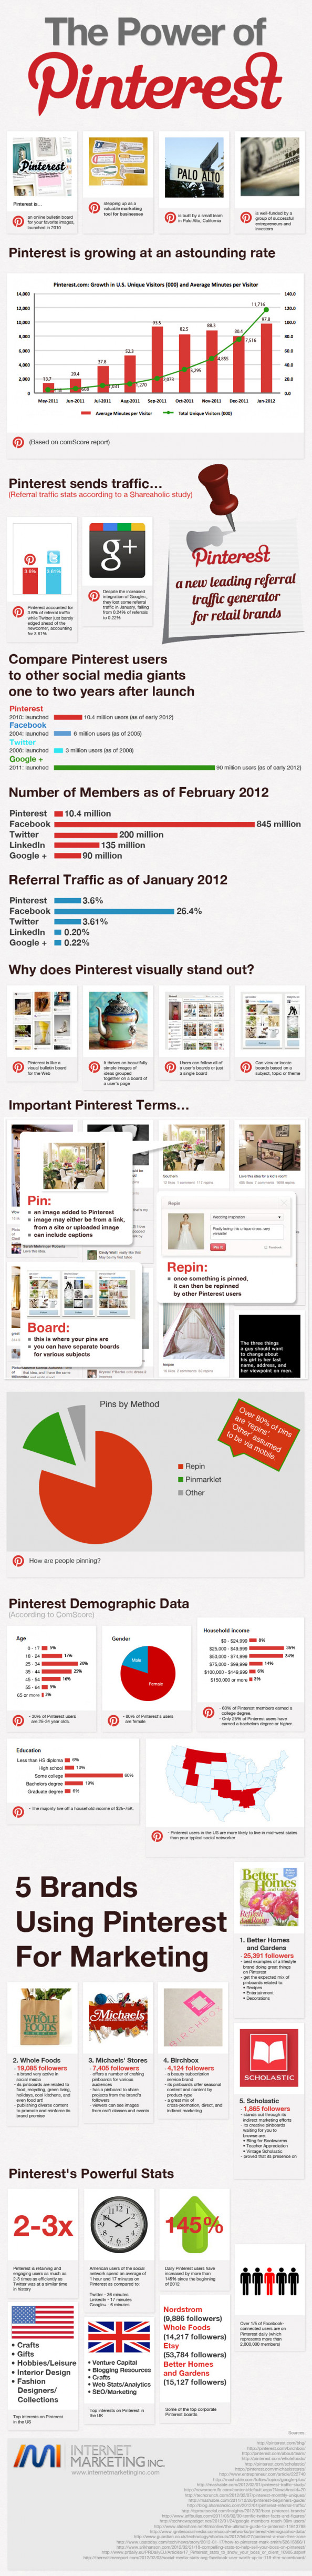 The Power of Pinterest Infographic